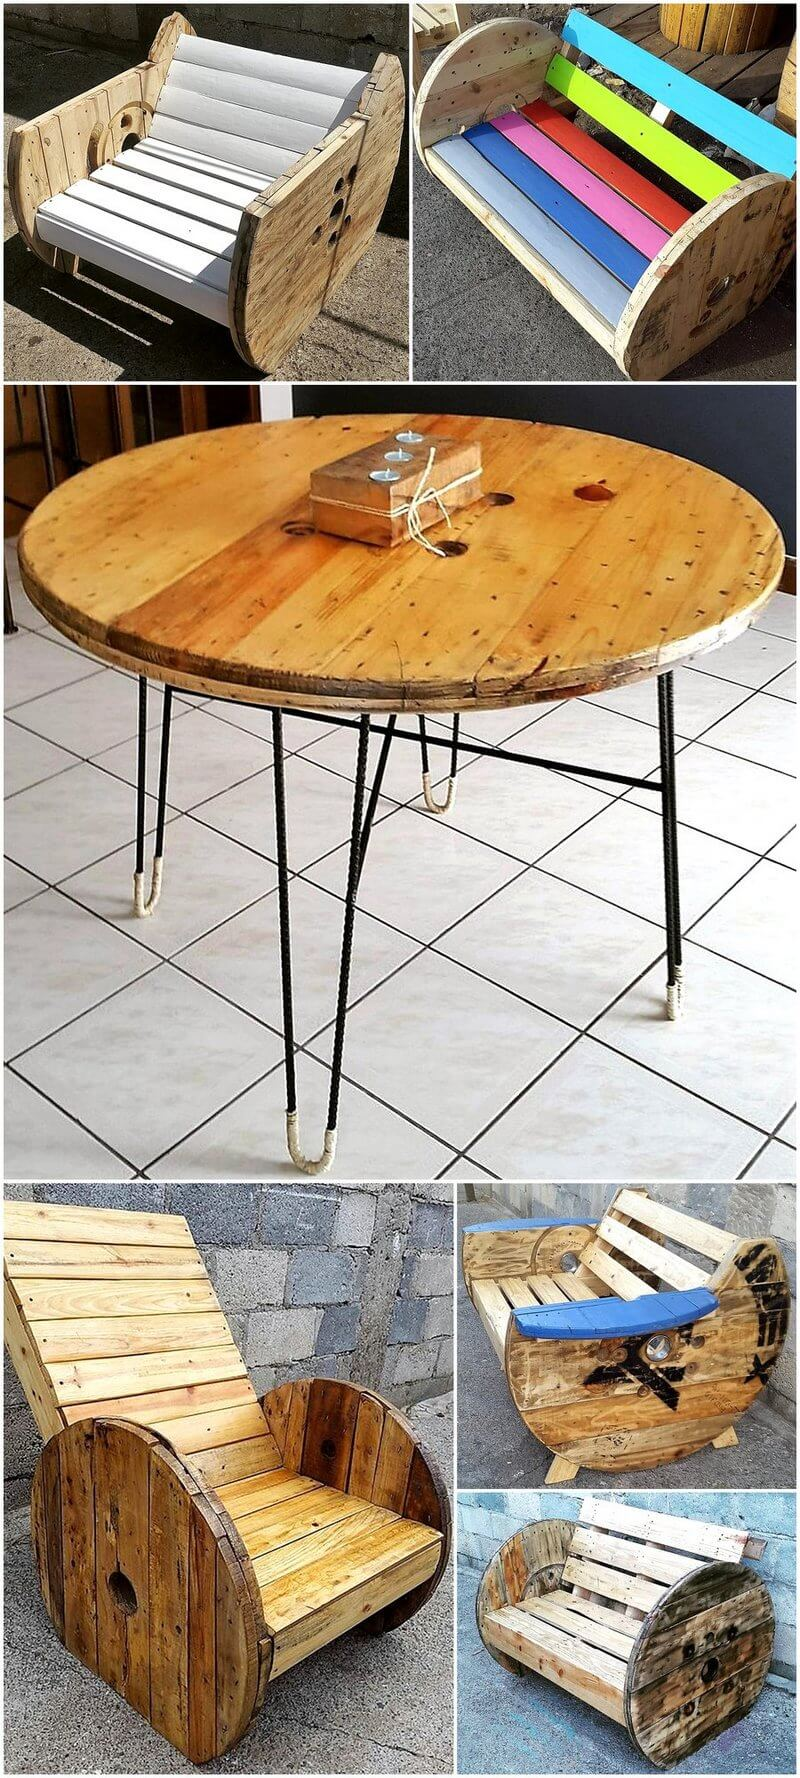 recycled pallet cable reel furniture ideas